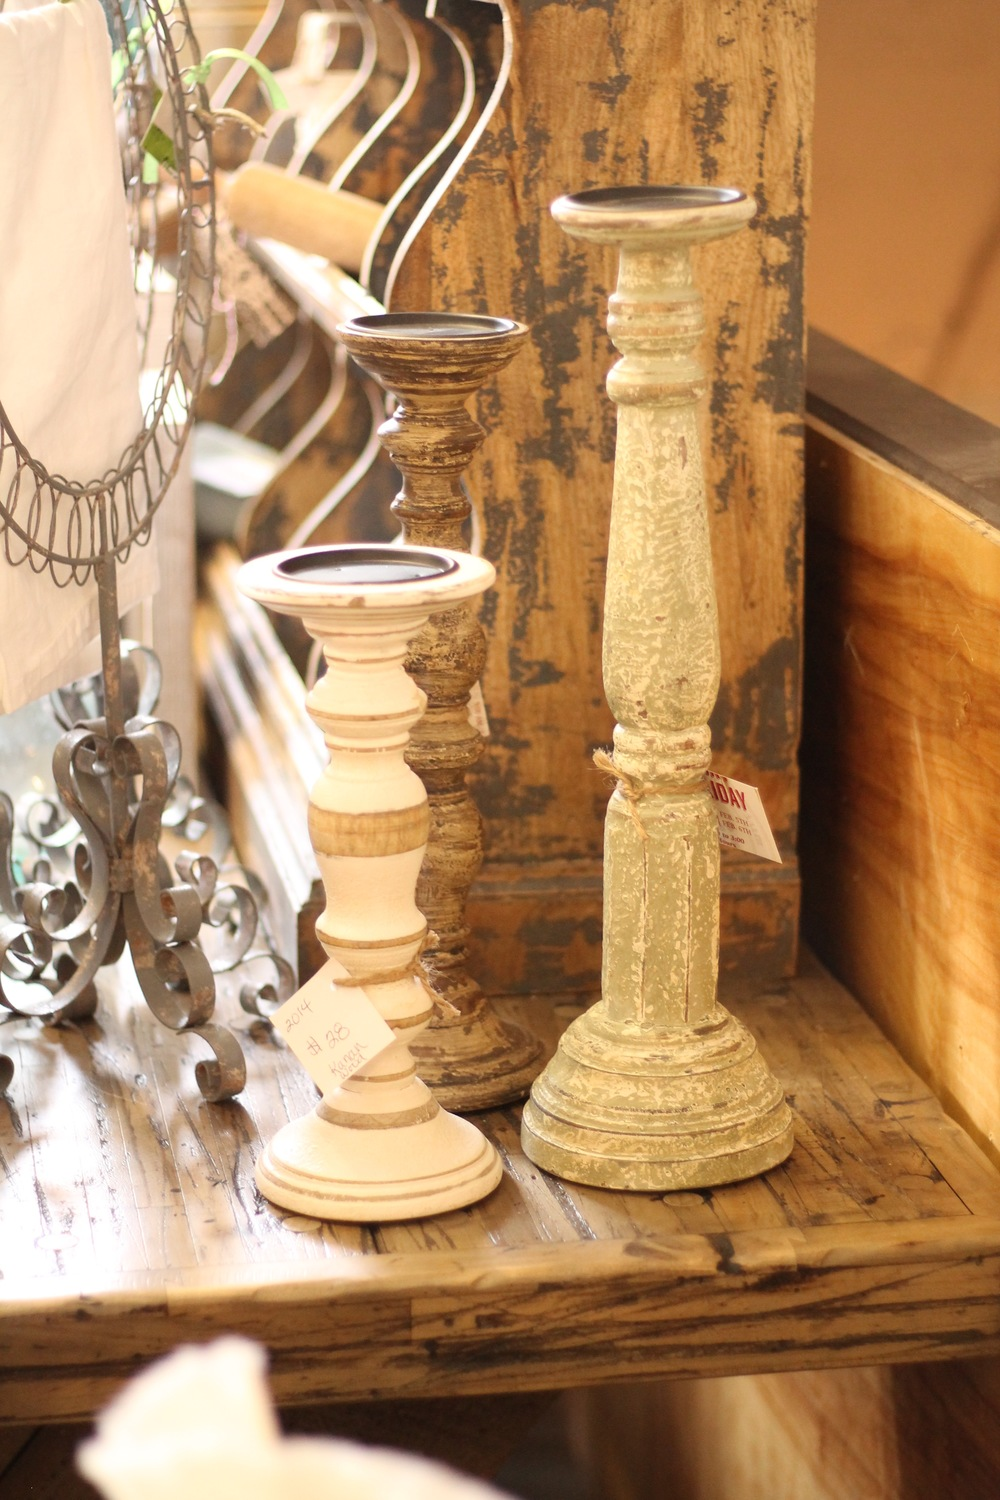 These candlesticks are another simple way to mix woods, whites, and textures.    Photo from: Anna Huff